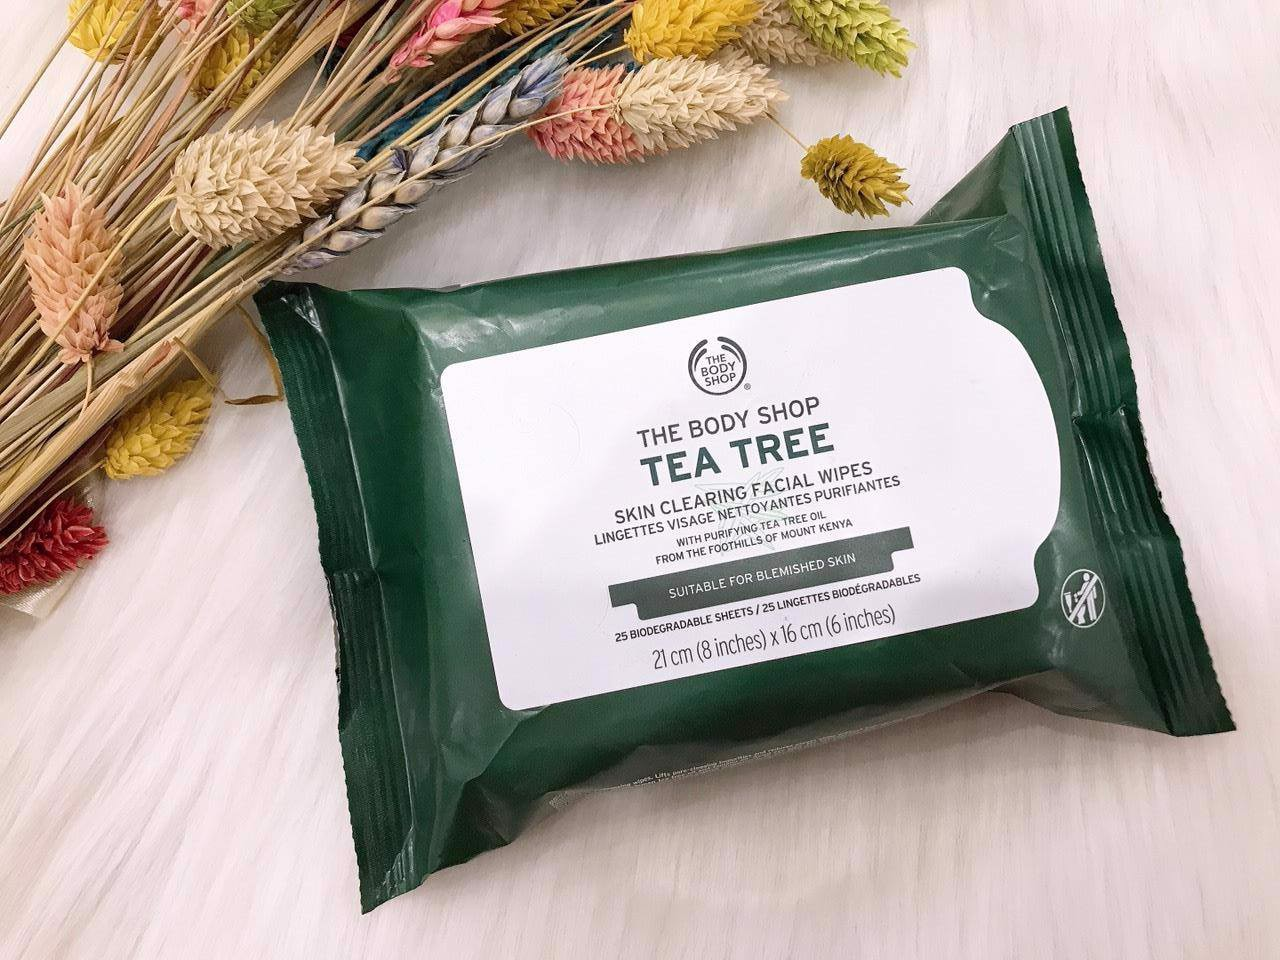 Khăn giấy tẩy trang The Body Shop Tea Tree Skin Clearing Facial Wipes